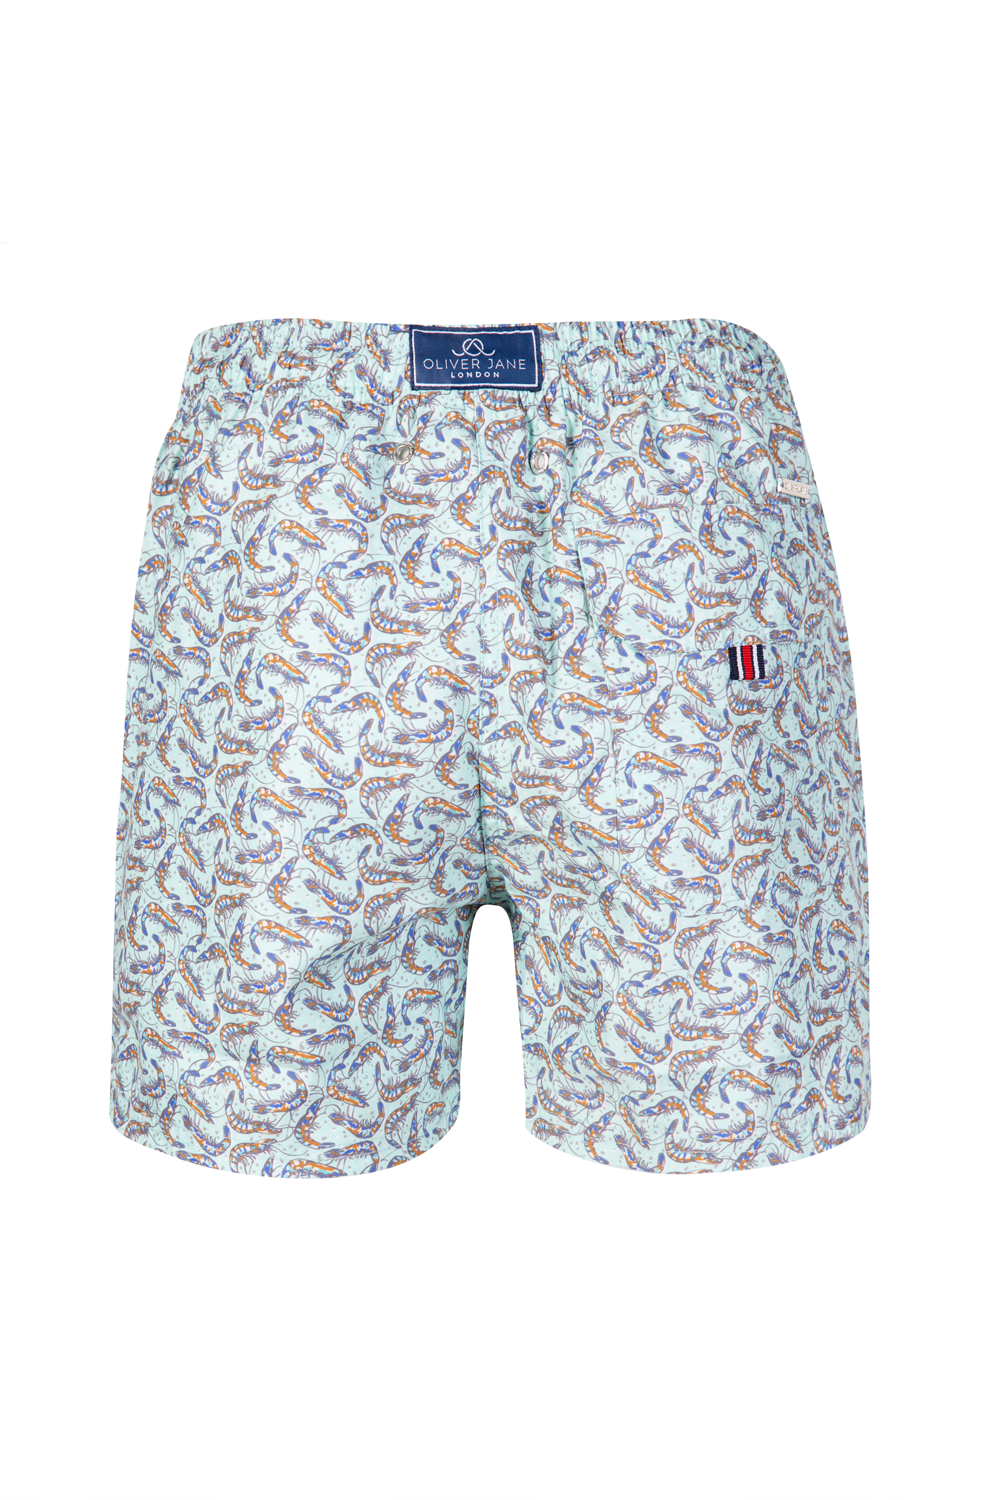 The Winking Prawn Turquoise Swim Short